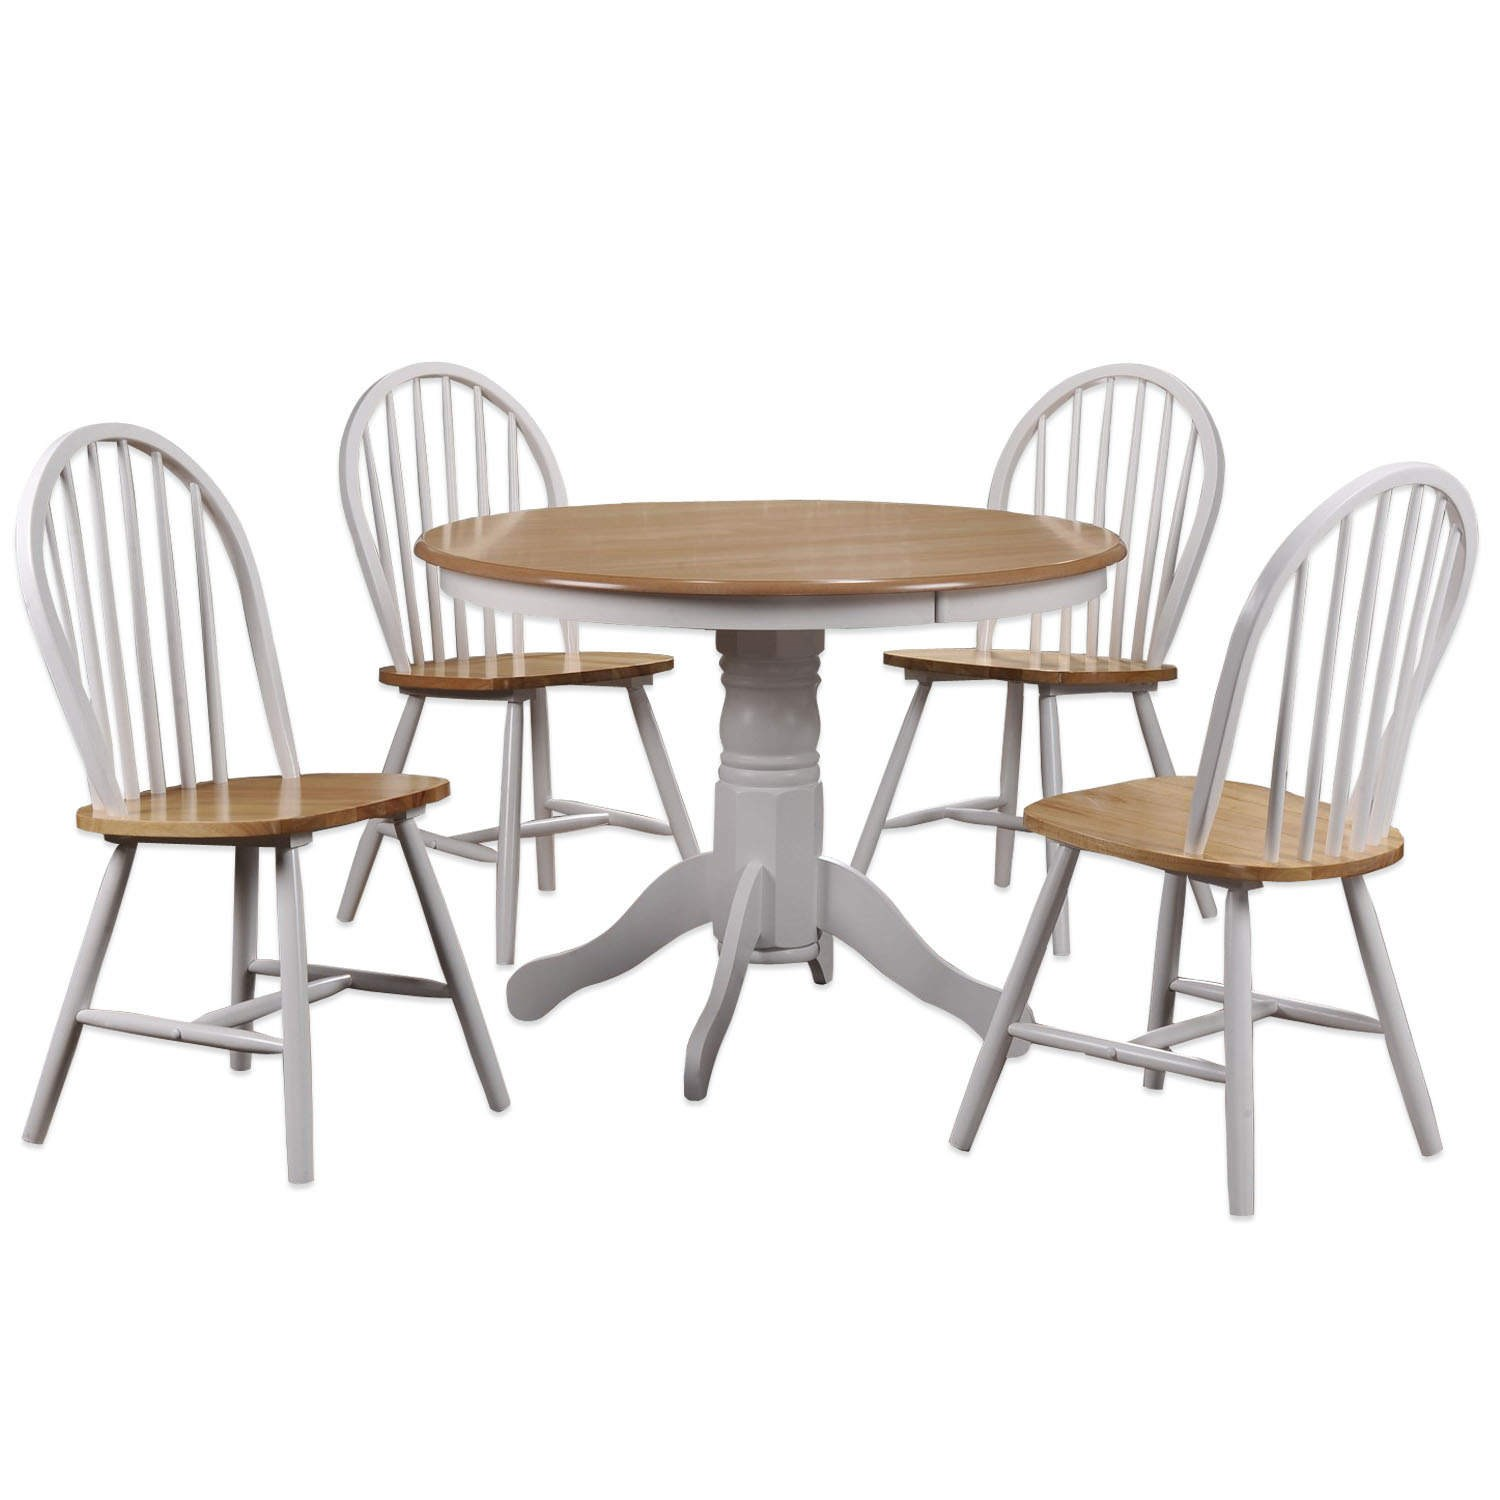 Round Solid Wood Dining Table and 4 Chairs eBay : showimage from www.ebay.co.uk size 1500 x 1500 jpeg 162kB